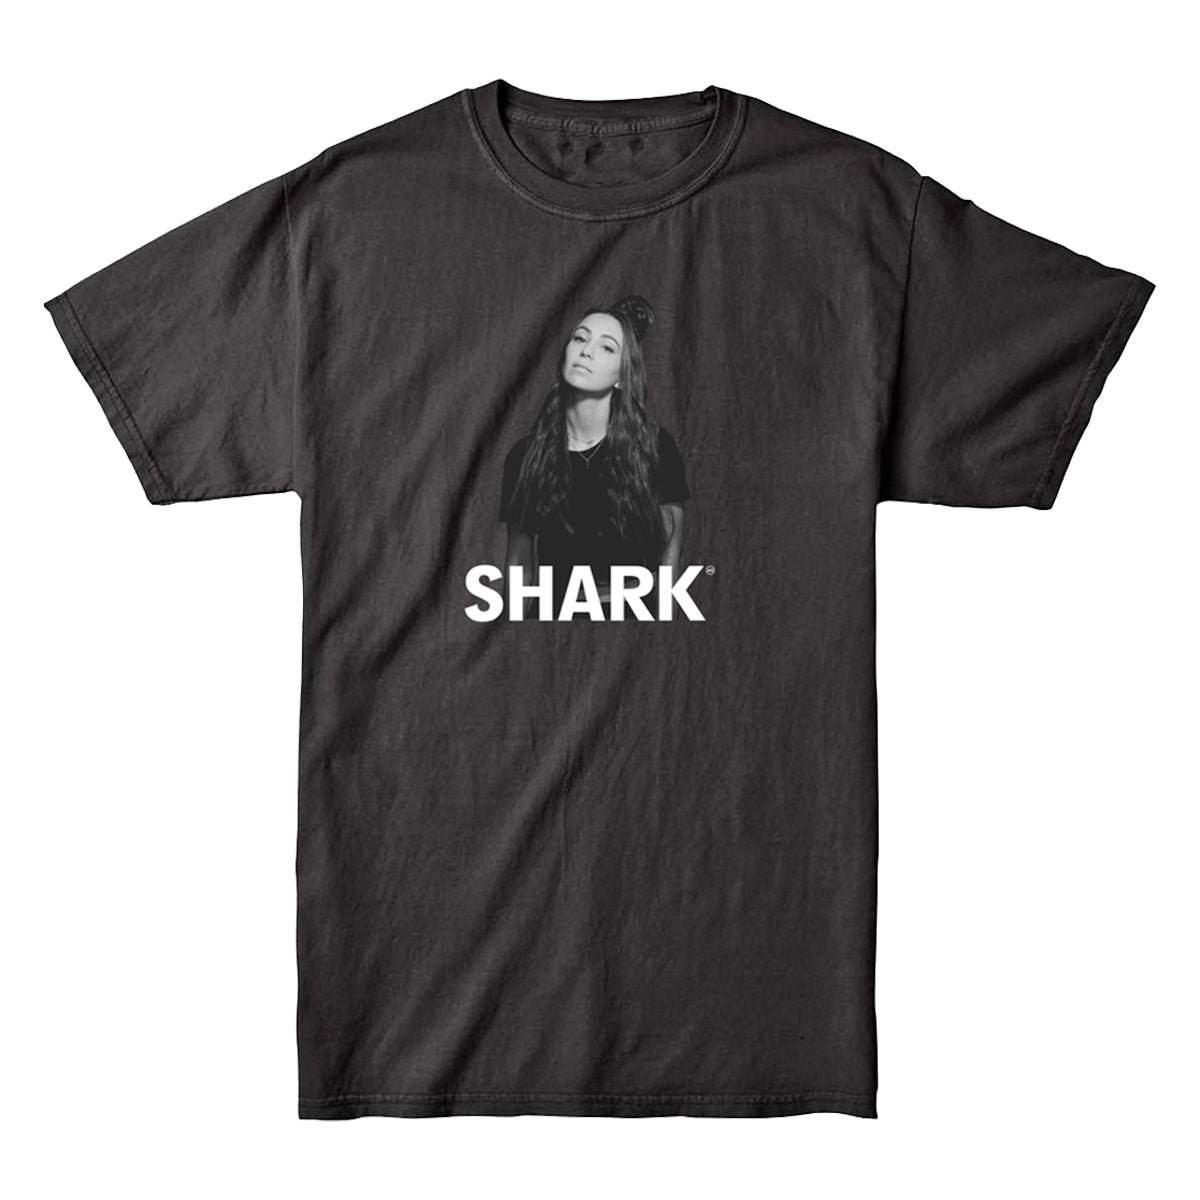 Faded Shark Tee + Digital Download